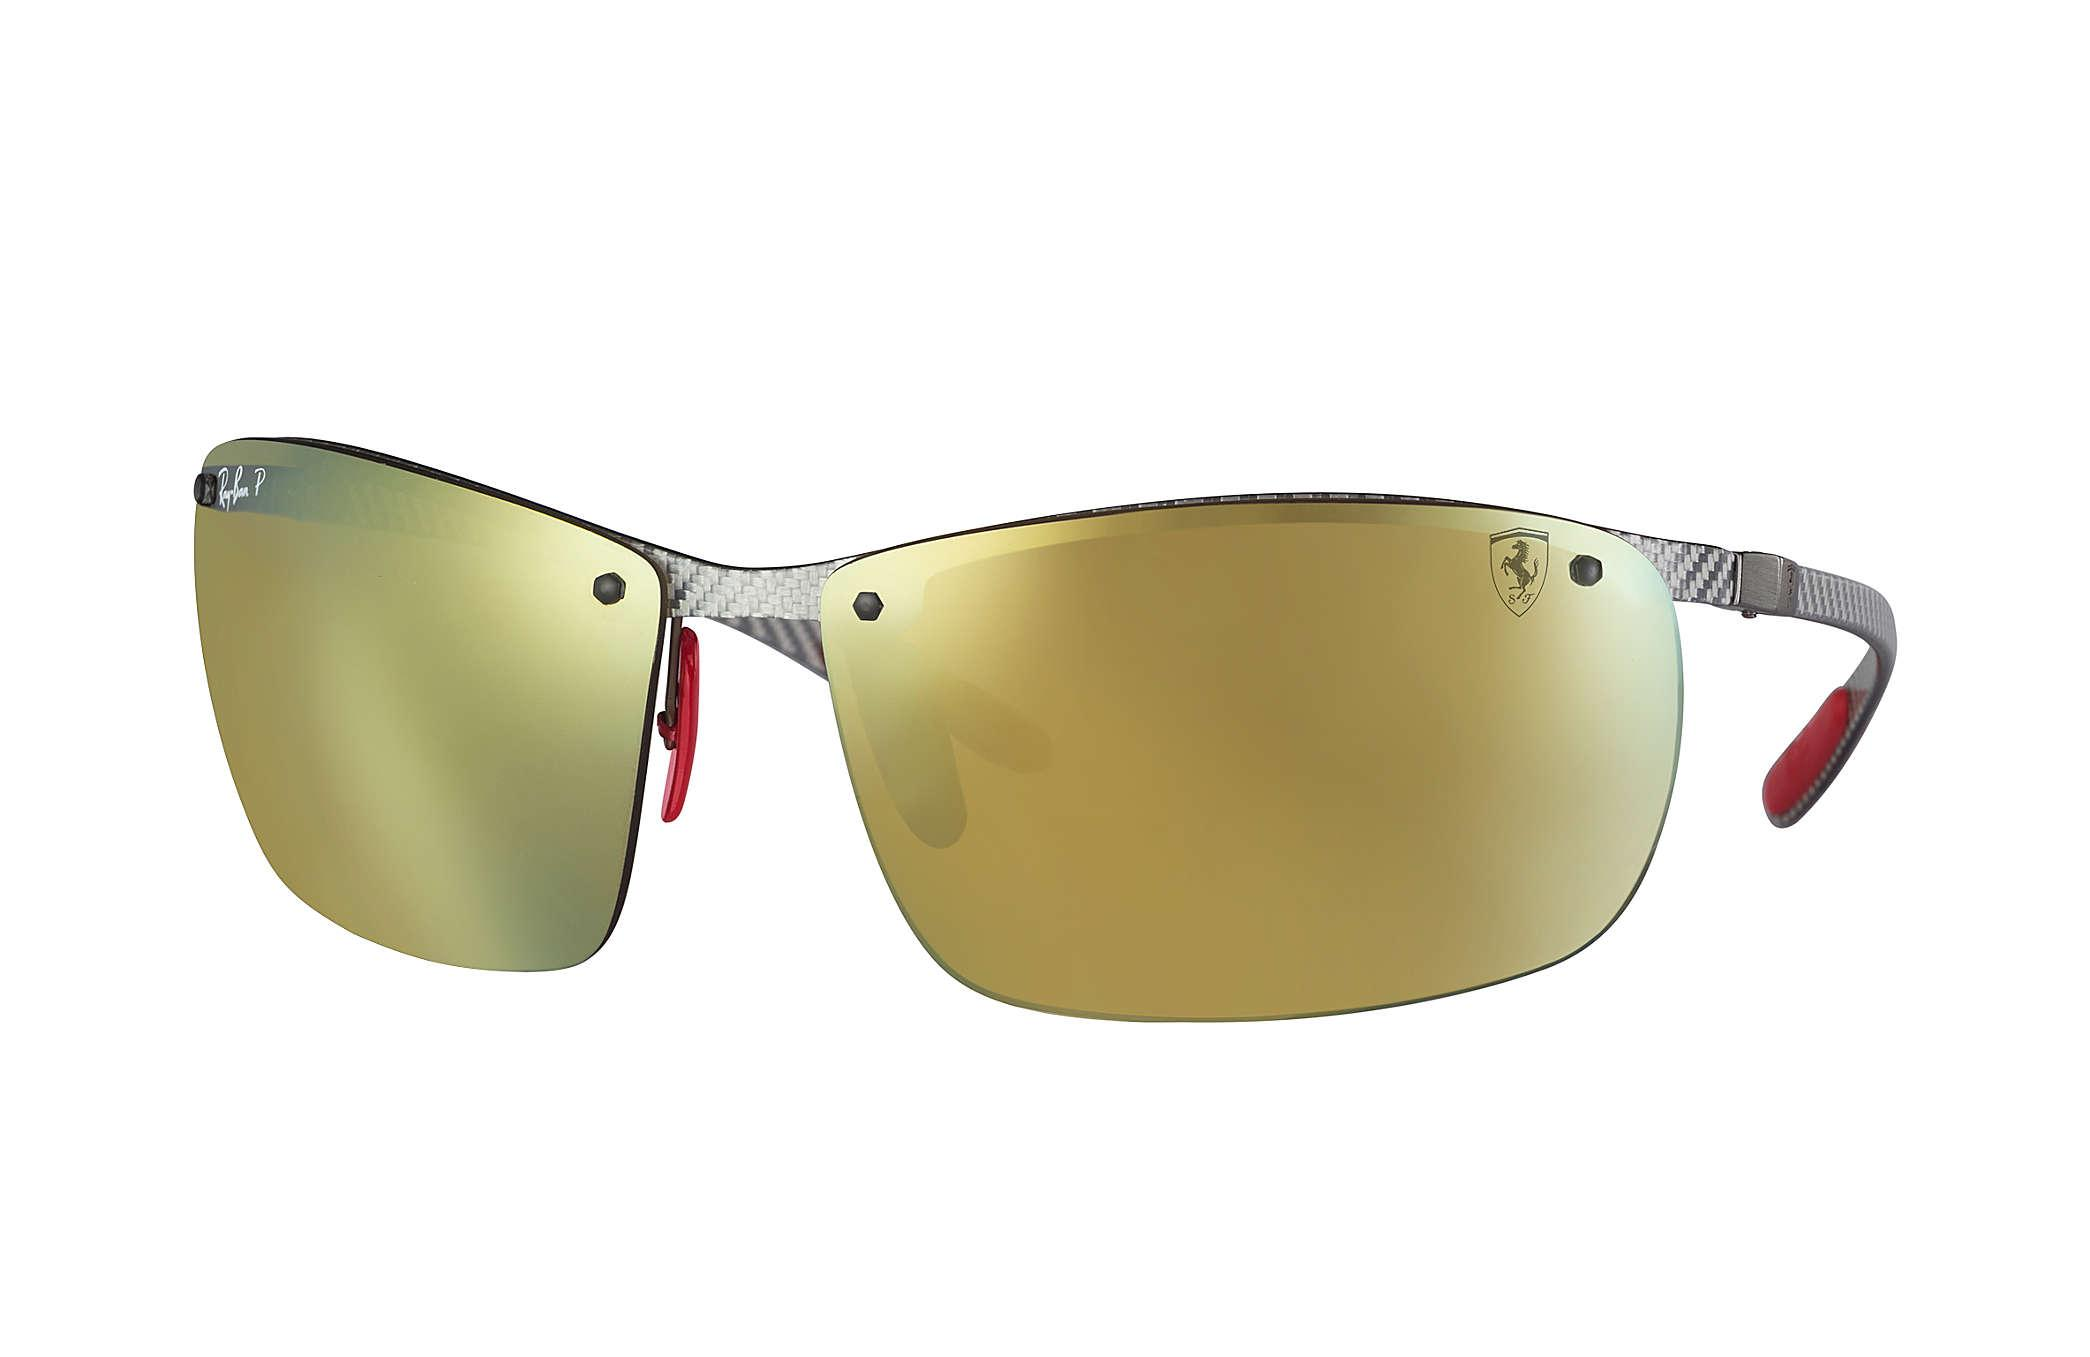 aba3240c57 Rayban Ferrari. Ray-ban Rb8305m Scuderia Ferrari Collection ...